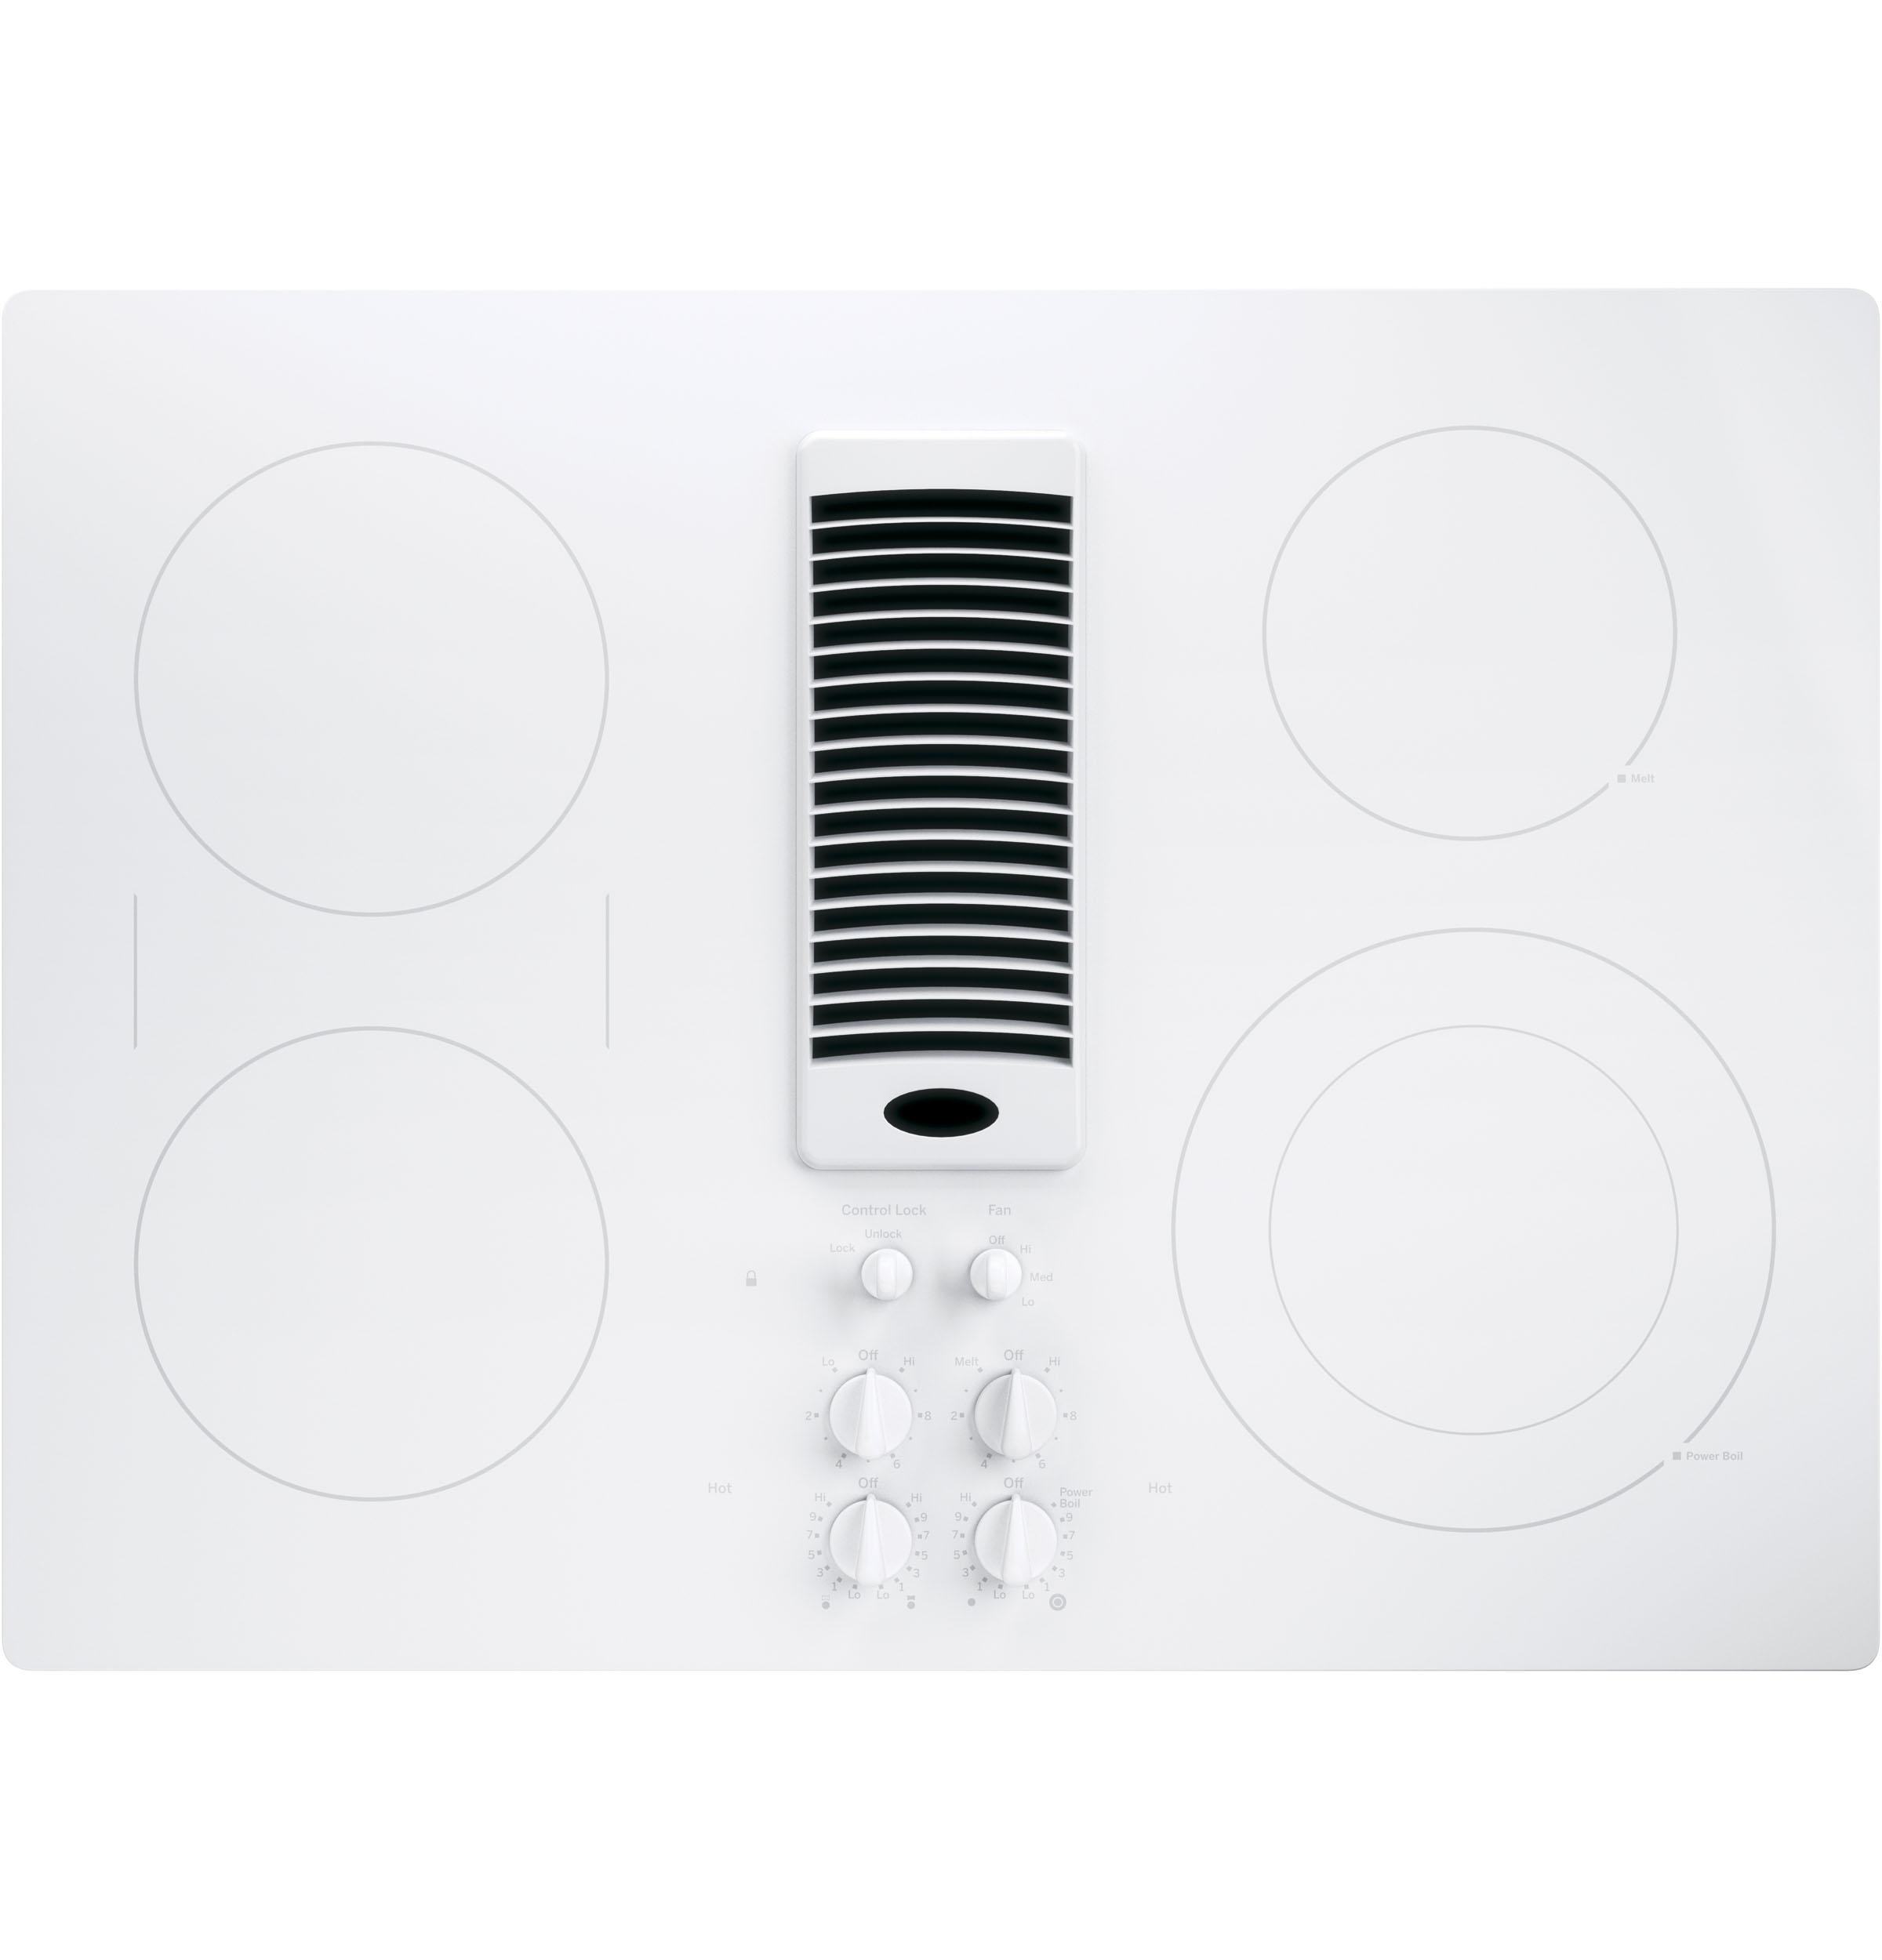 GE APPLIANCES PP9830TJWW